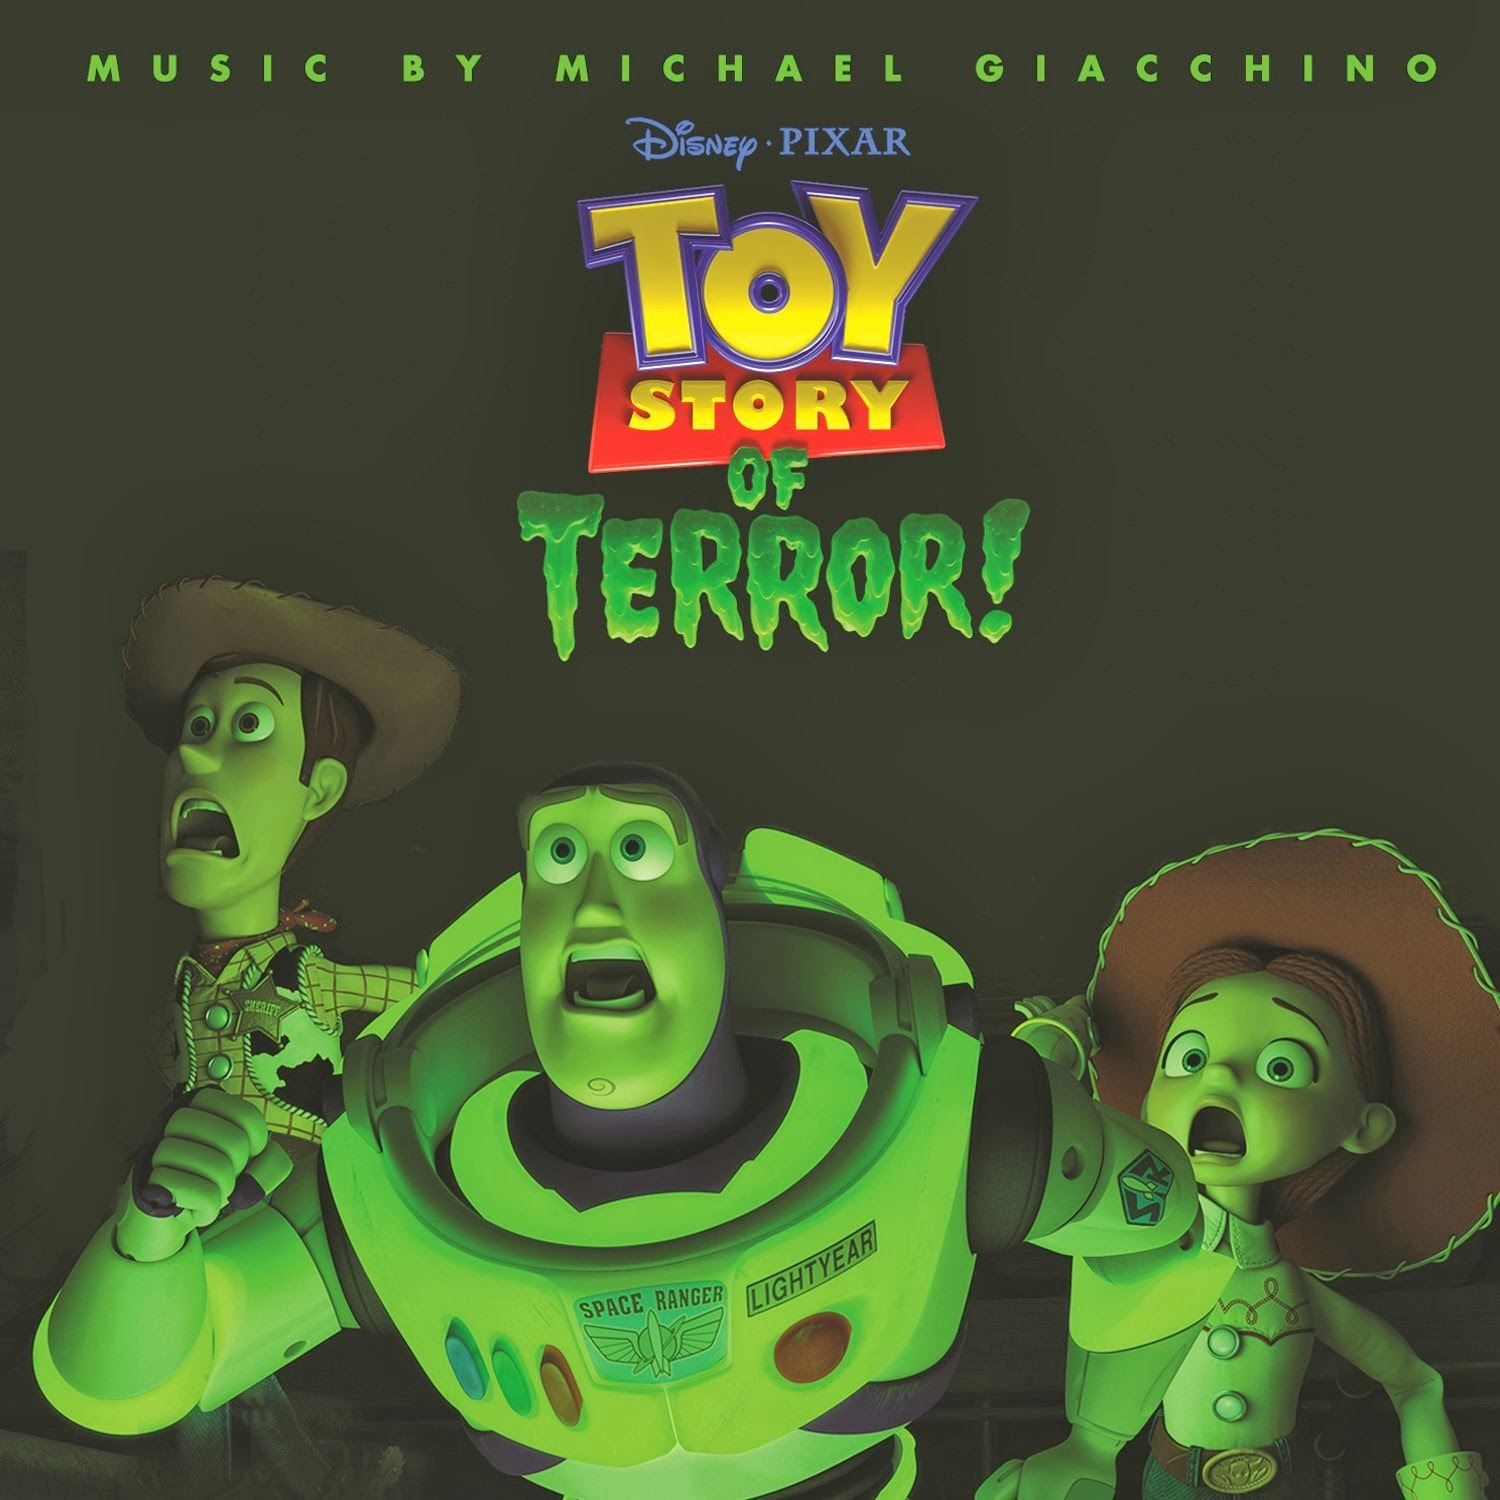 Pixar disney bande originale soundtrack  toy story angoisse au motel of terror